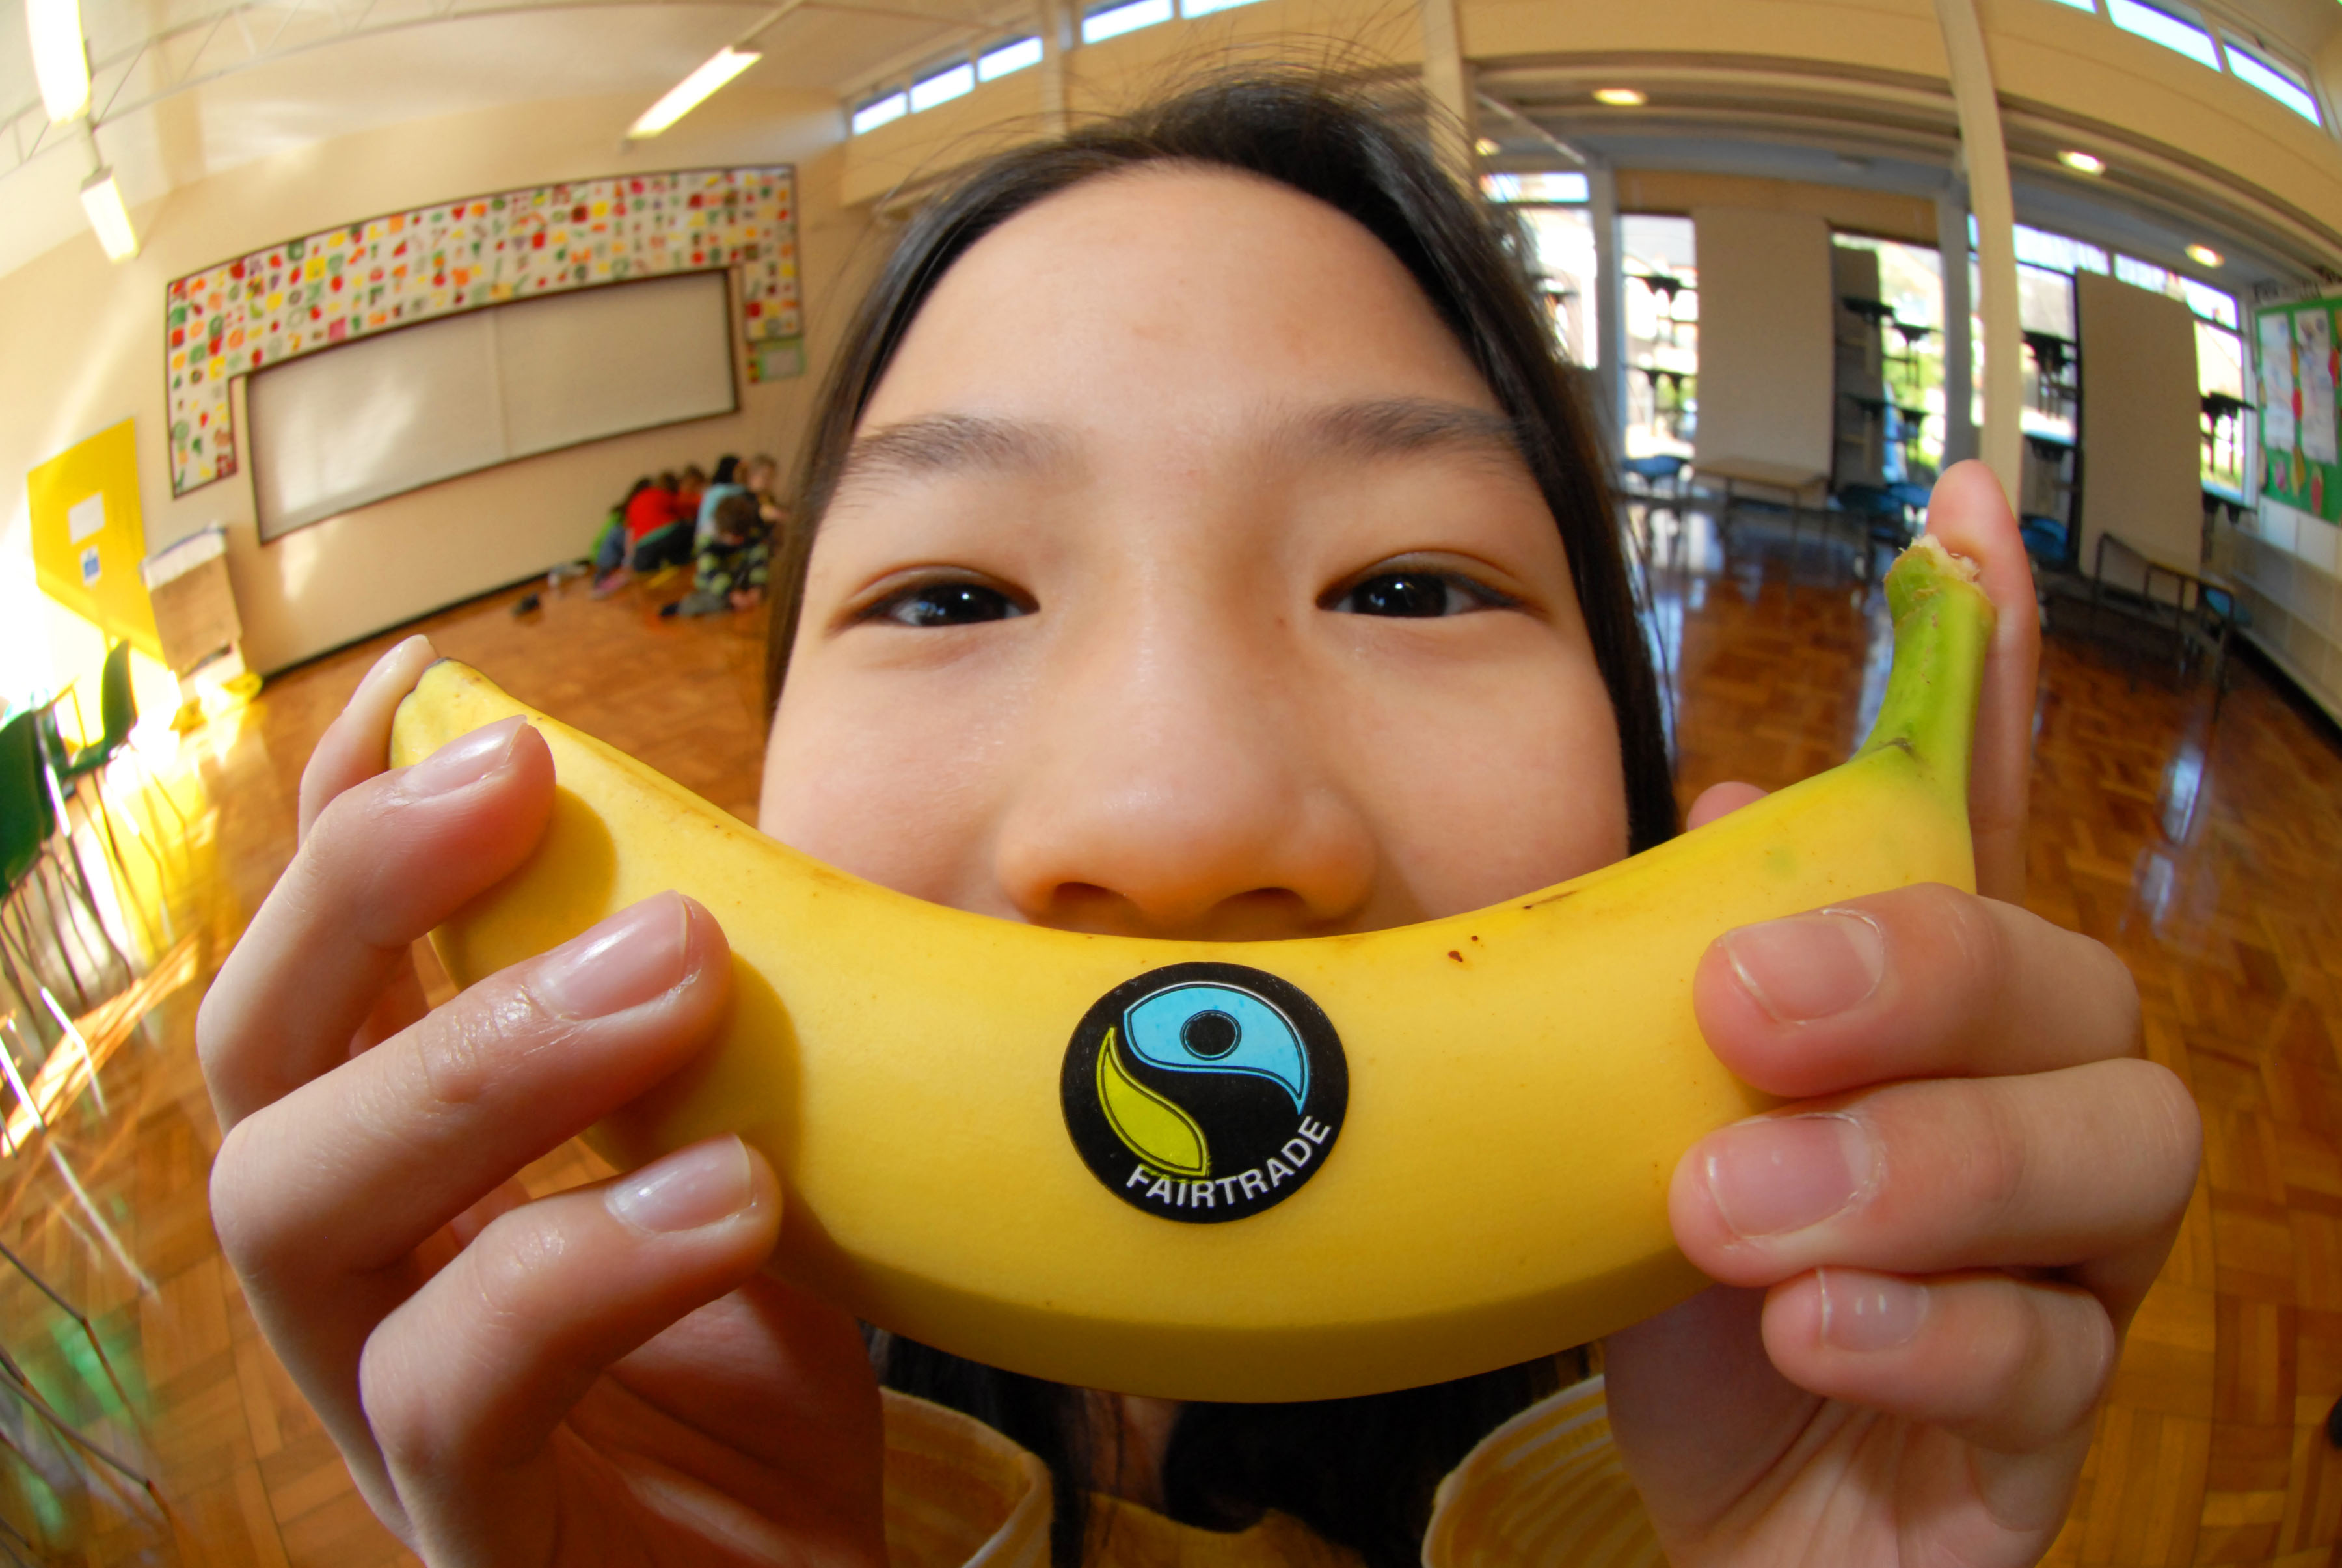 Lewisham residents urged to go bananas about Fairtrade for Fairtrade fortnight